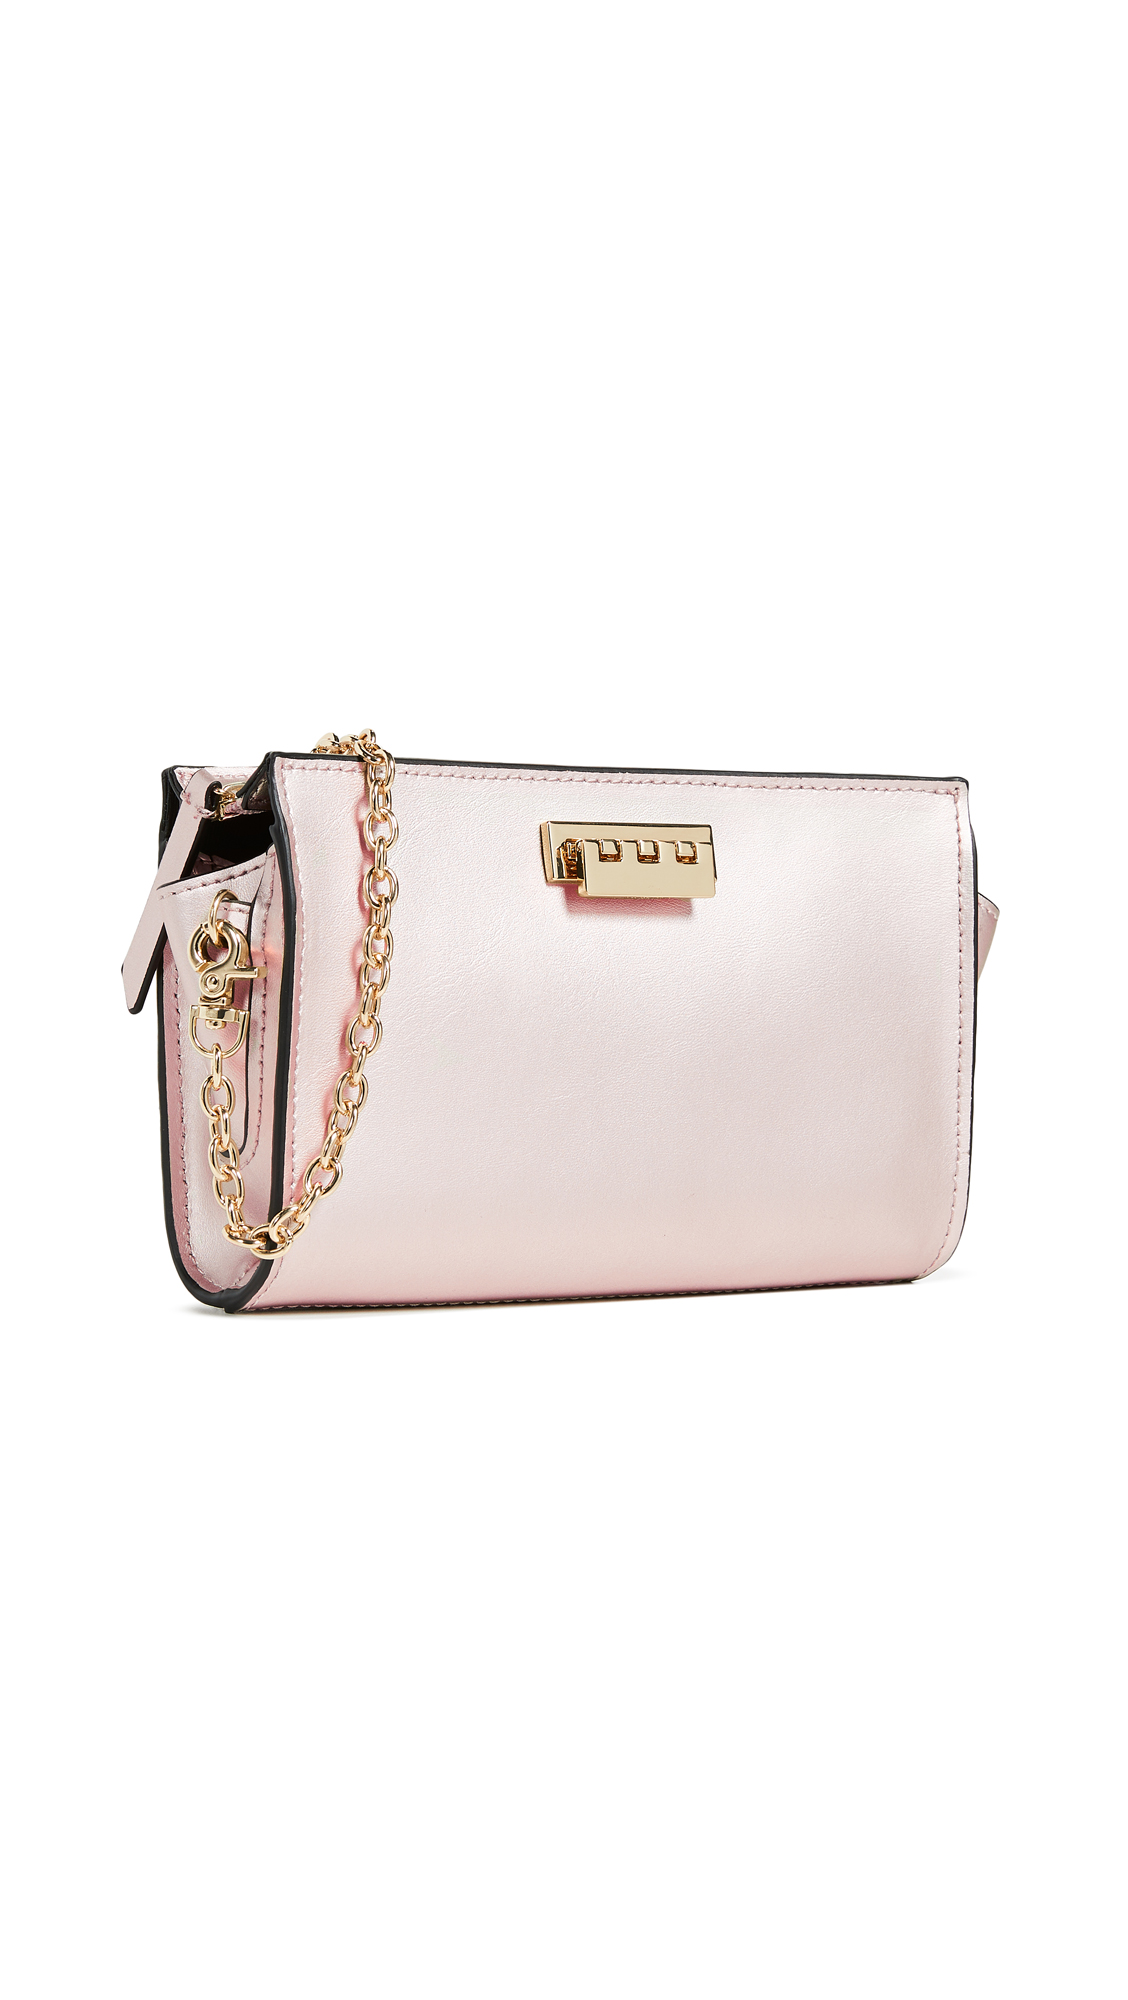 Eartha Iconic Phone Wallet Crossbody Bag in Rose